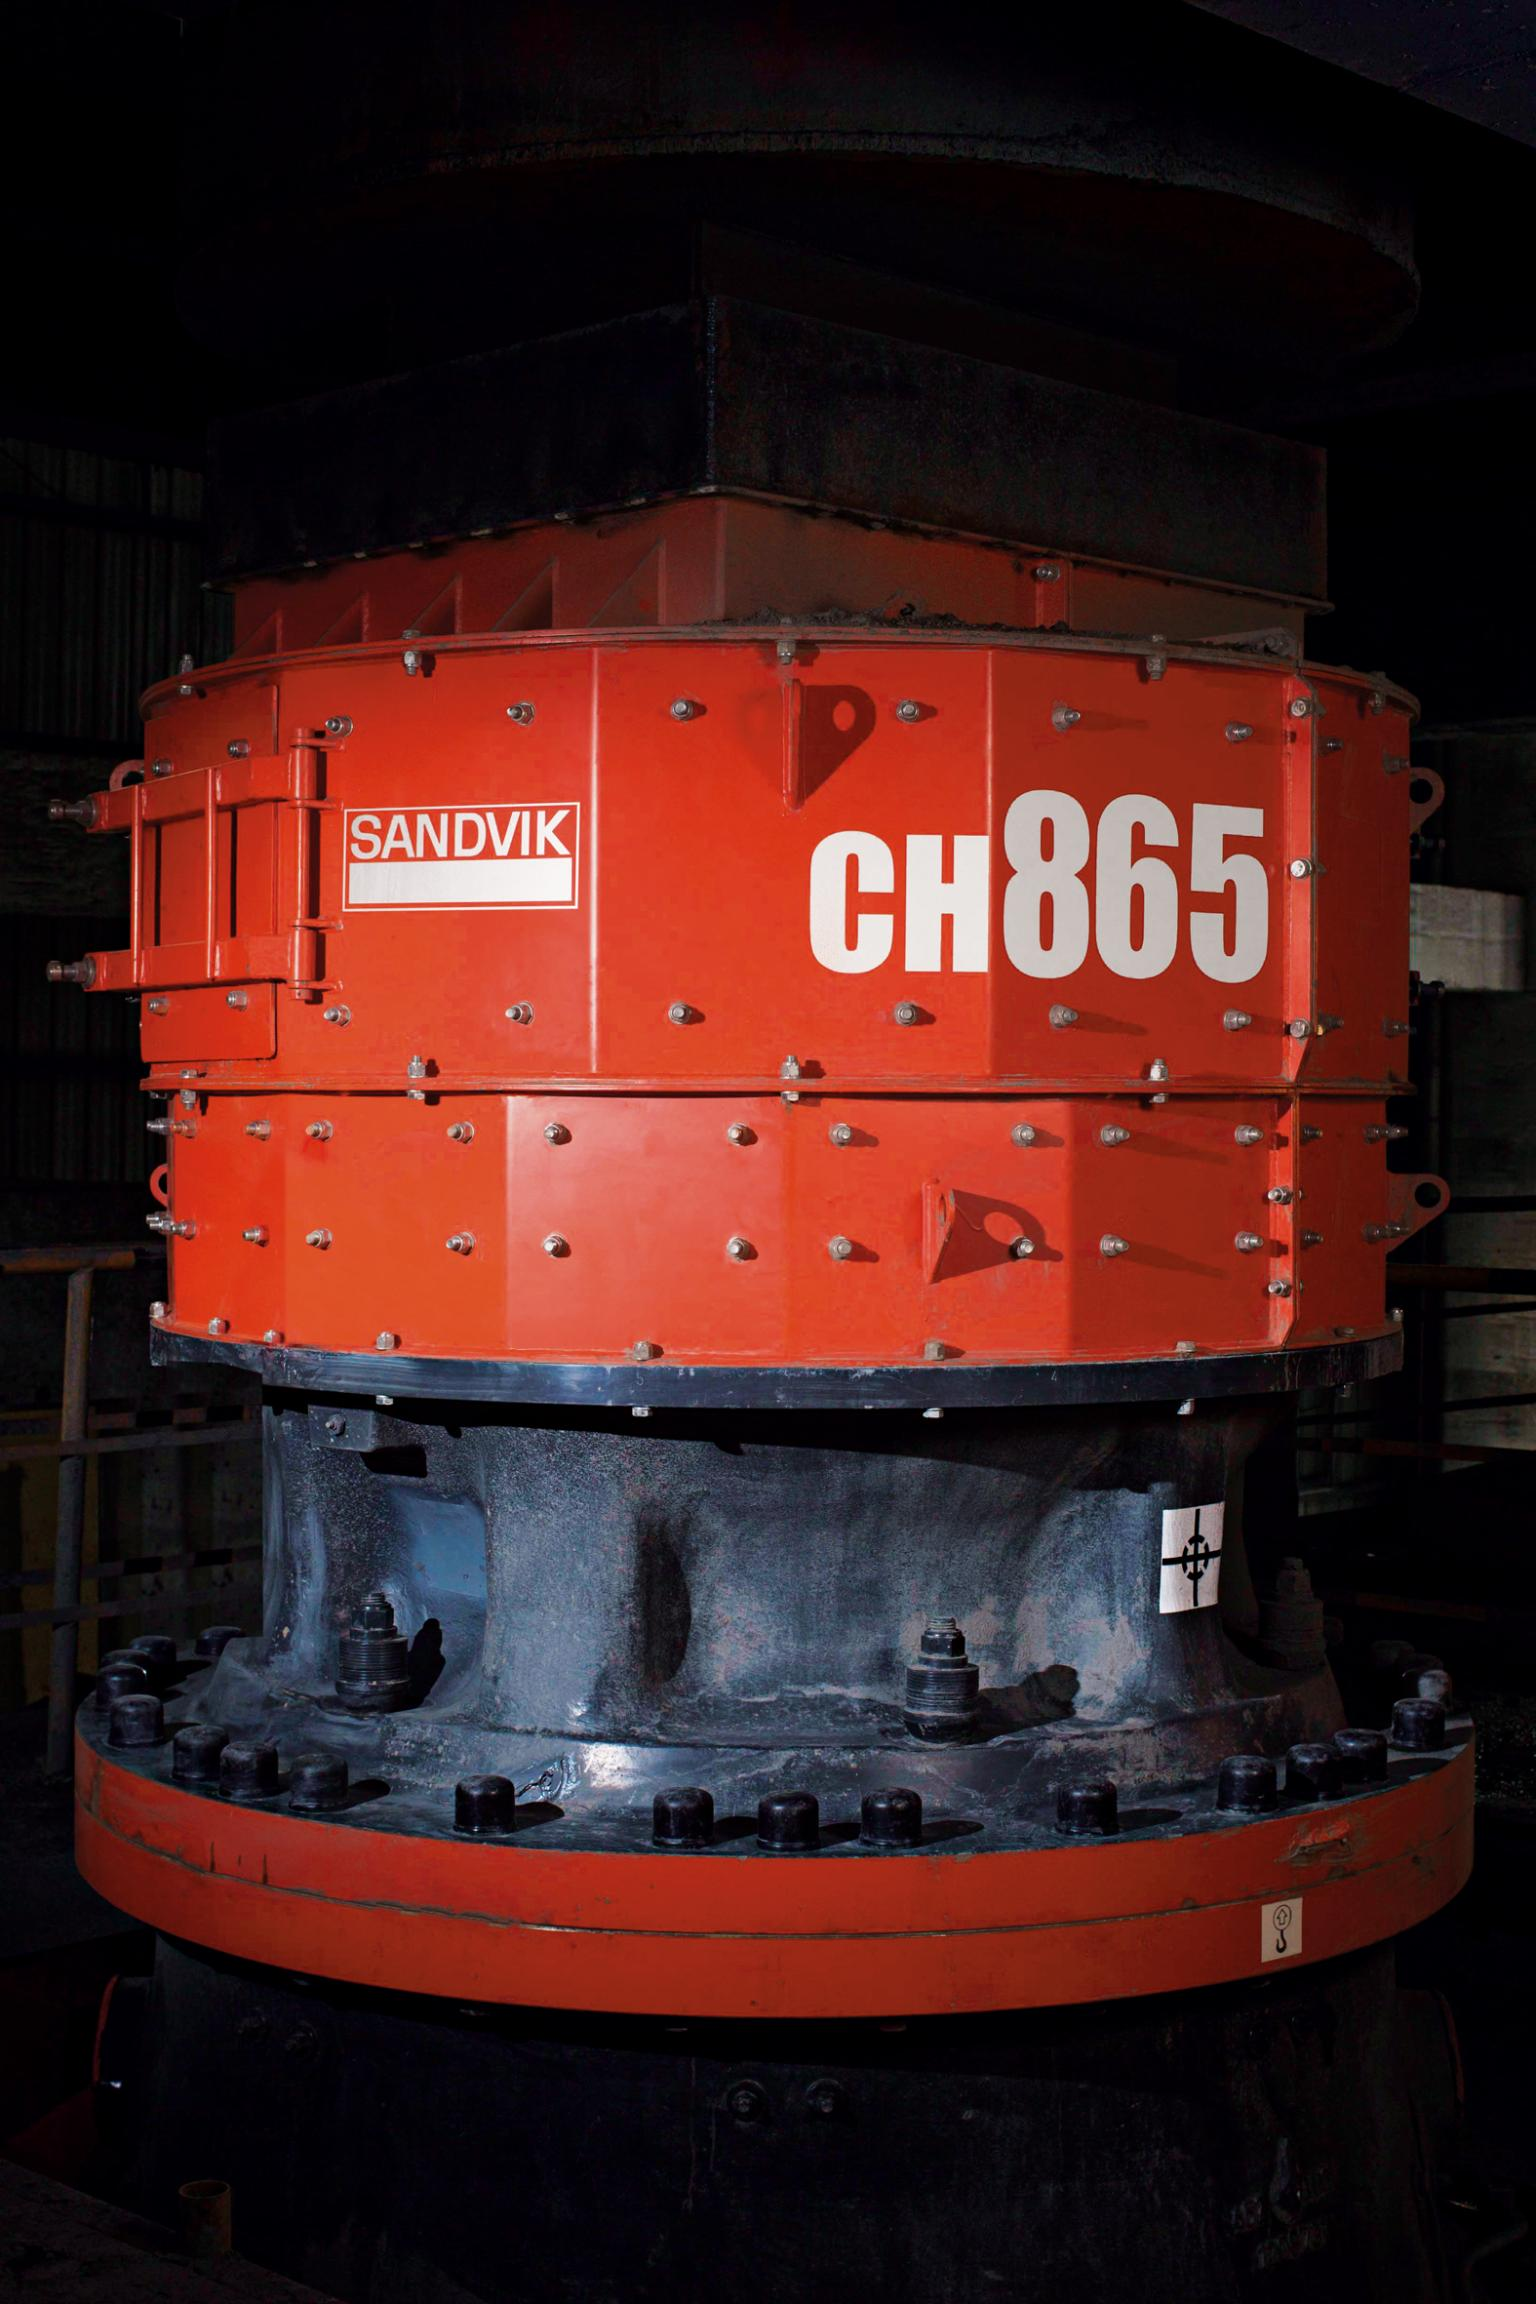 Sandvik Mining has added to its existing CH800 range with two more cone crushers.  The CH860 is designed for high-capacity secondary crushing while the CH865 is designed for high-reduction tertiary and pebble applications utilising higher forces